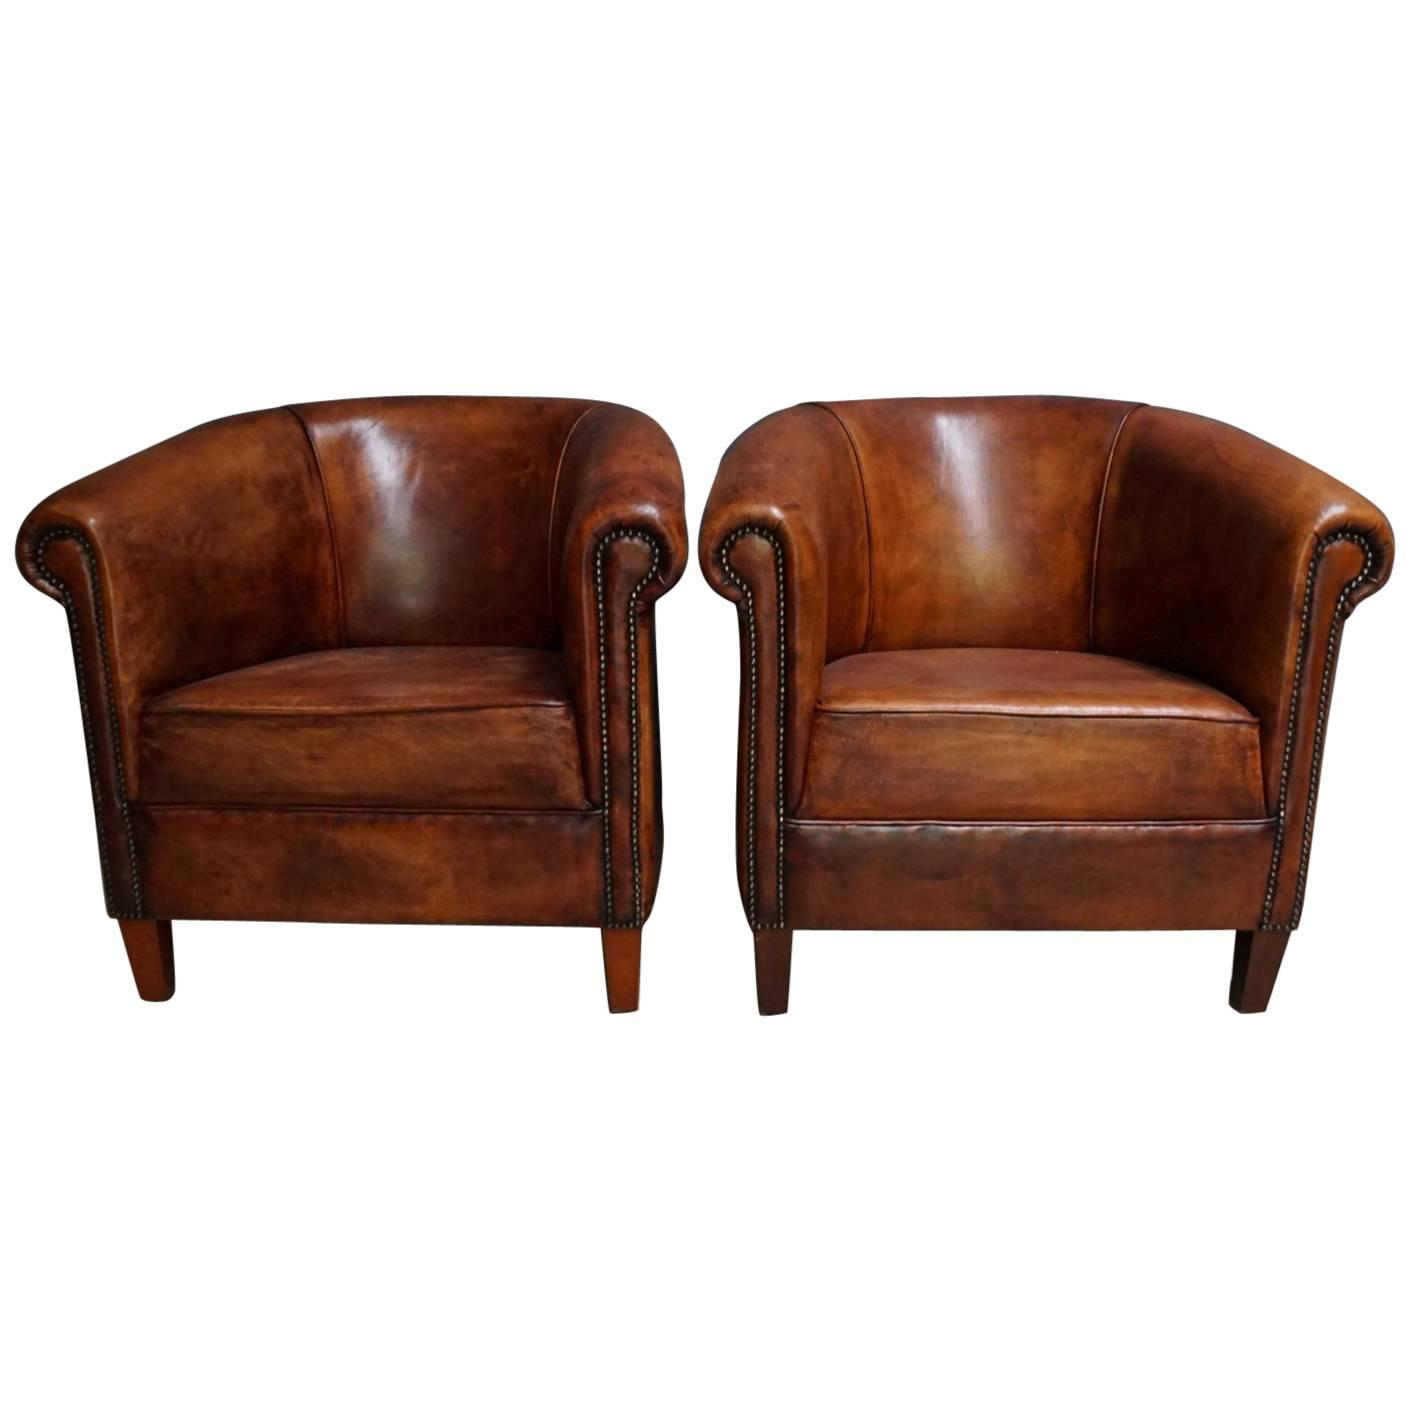 Vintage Dutch Cognac Leather Club Chairs, Set of Two For Sale